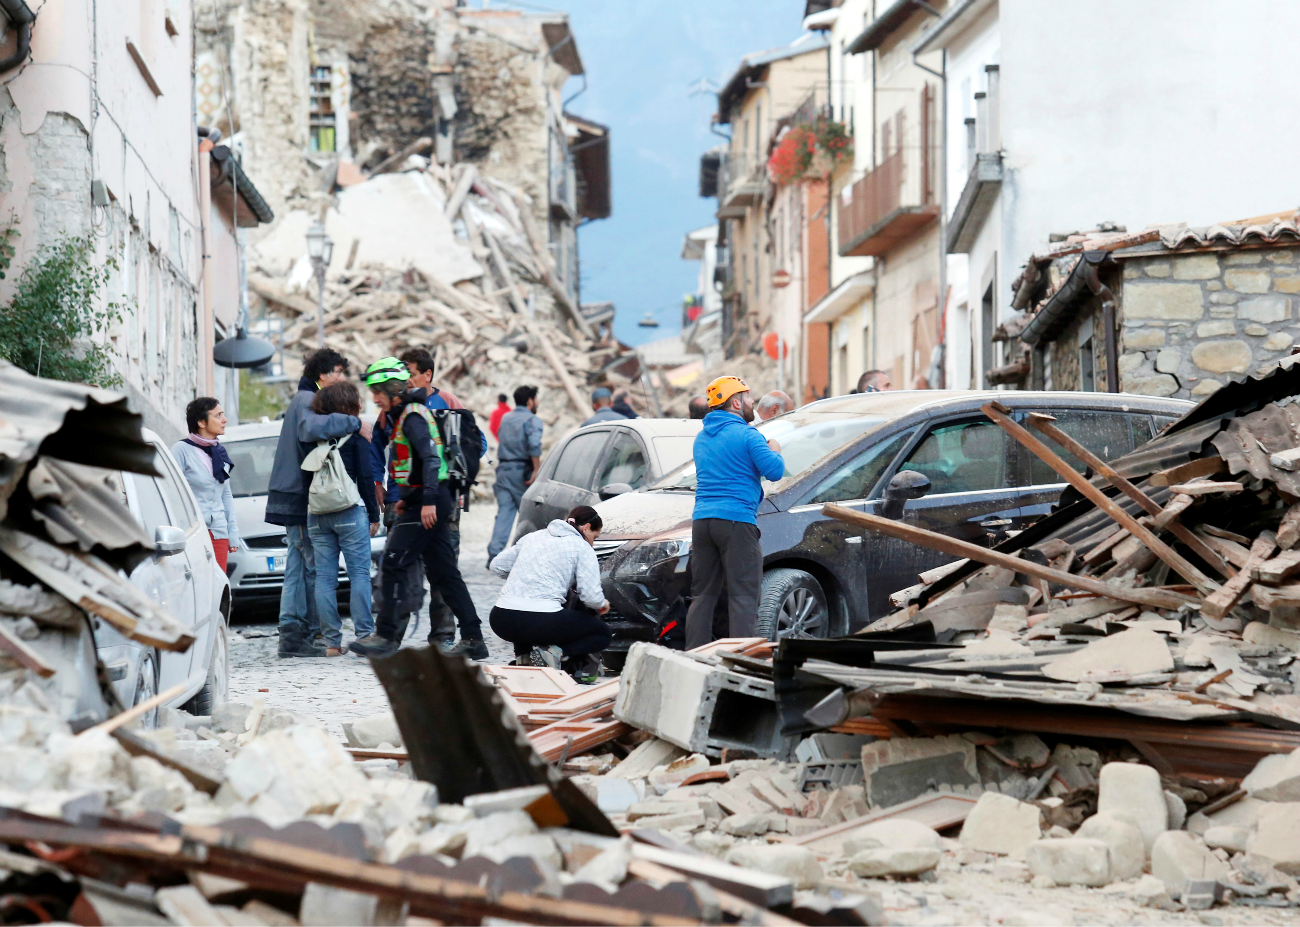 People stand along a road following a quake in Amatrice, central Italy, Aug. 24, 2016.